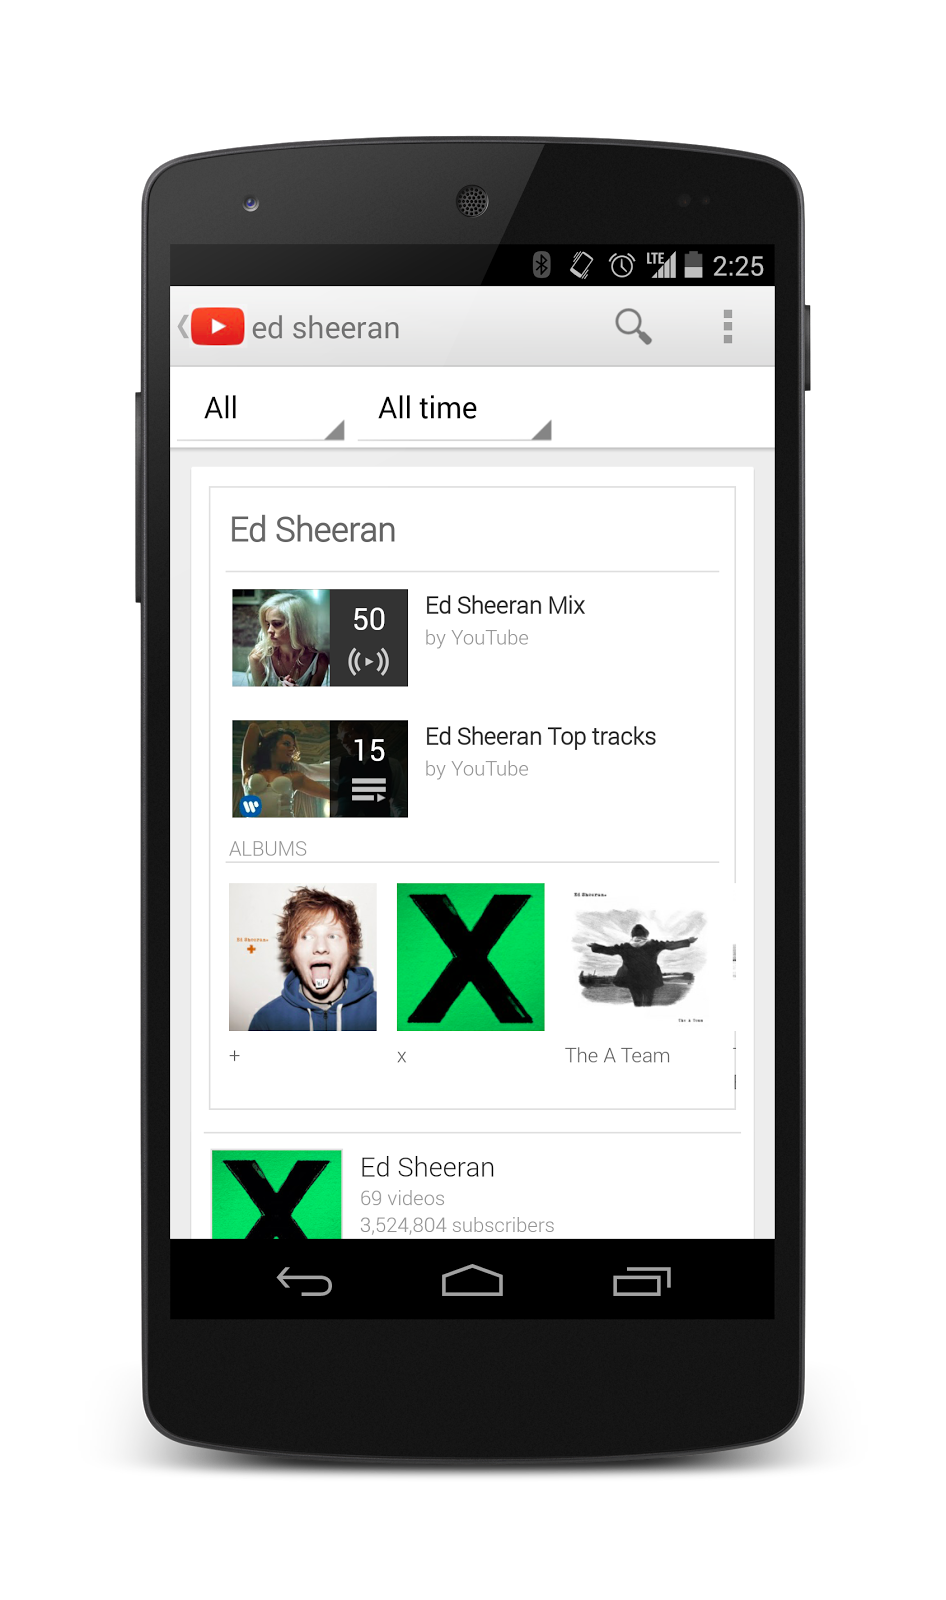 YouTube Music Key launched in UK, US and 4 more countries with free six-month trial for ad-free, offline music mode. Offers complete access to Google's Play Music library and vice versa